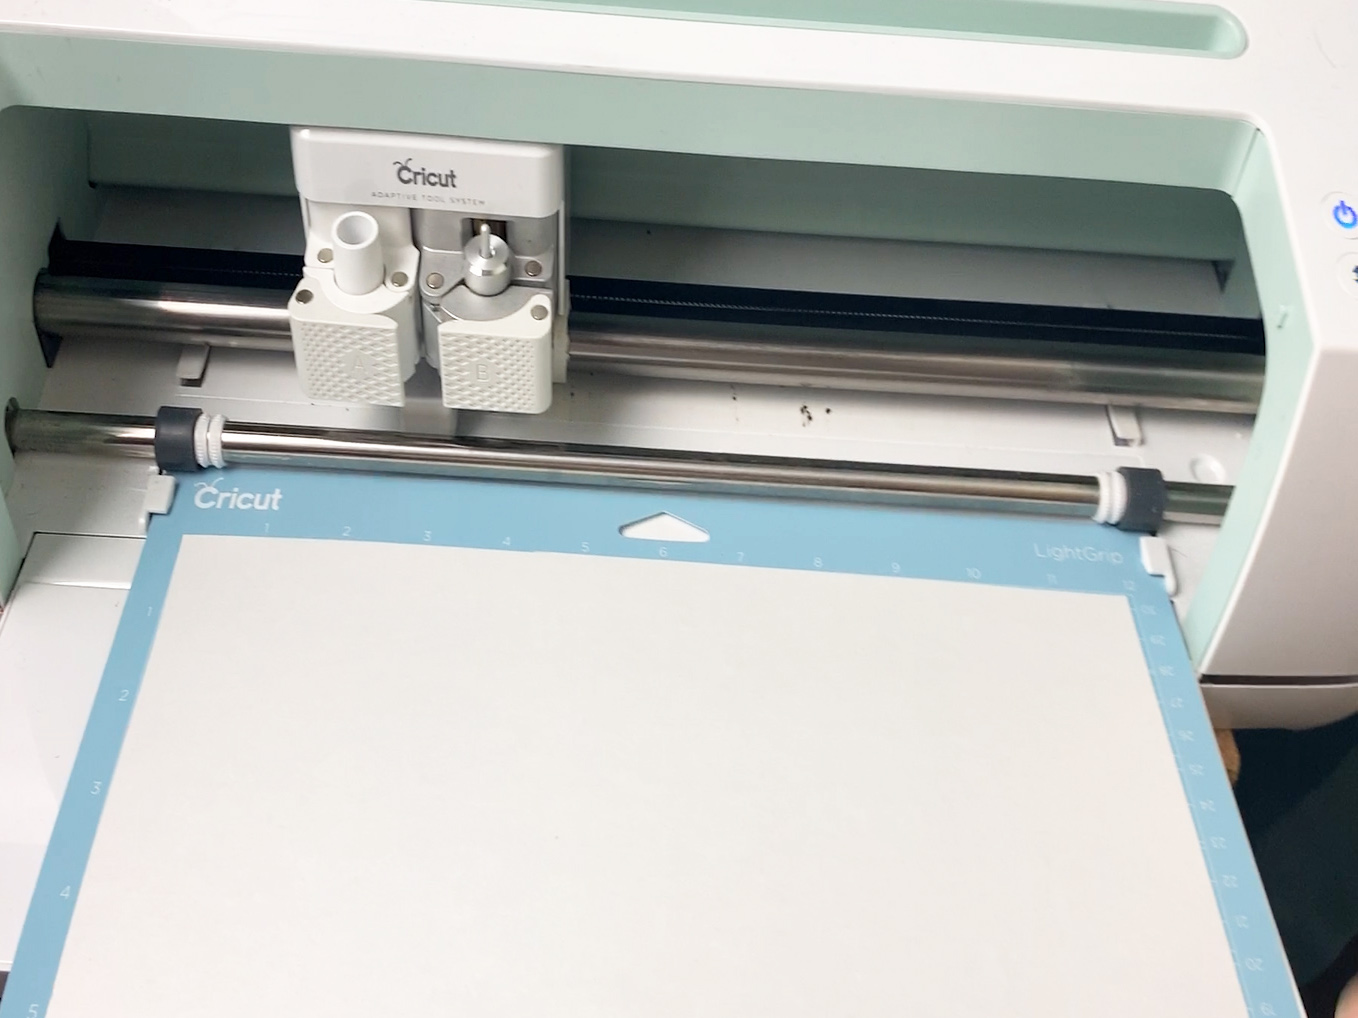 Choosing The Right Heat Press And Cricut Machine For Your